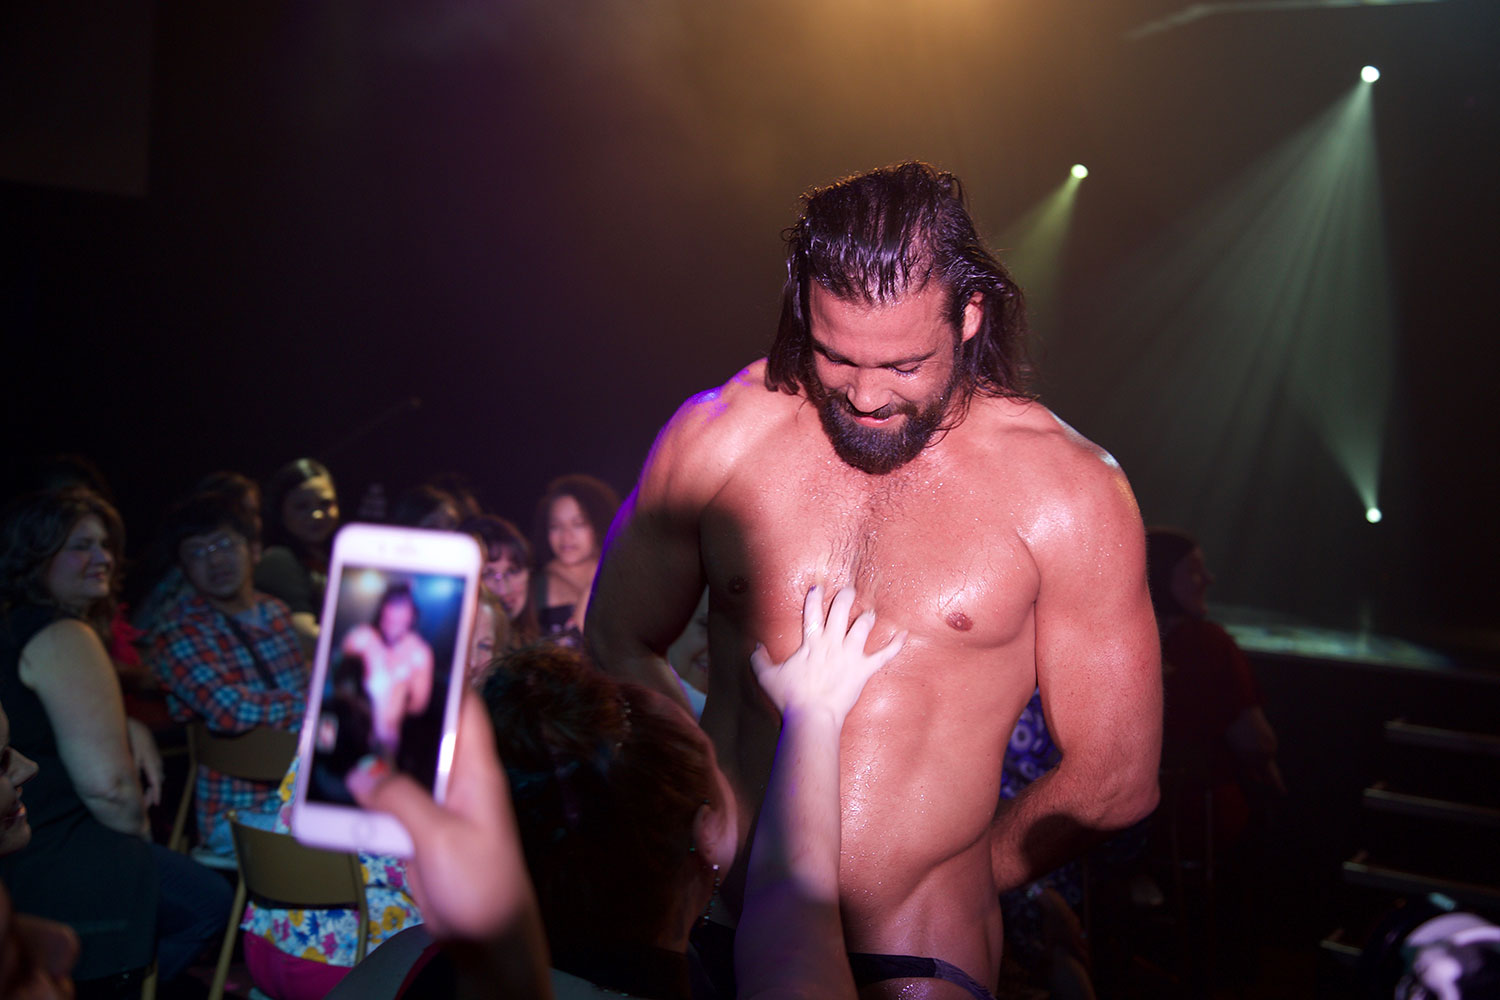 Thunder From Down Under - Alex, Tarzan, Male revue, nails on chest